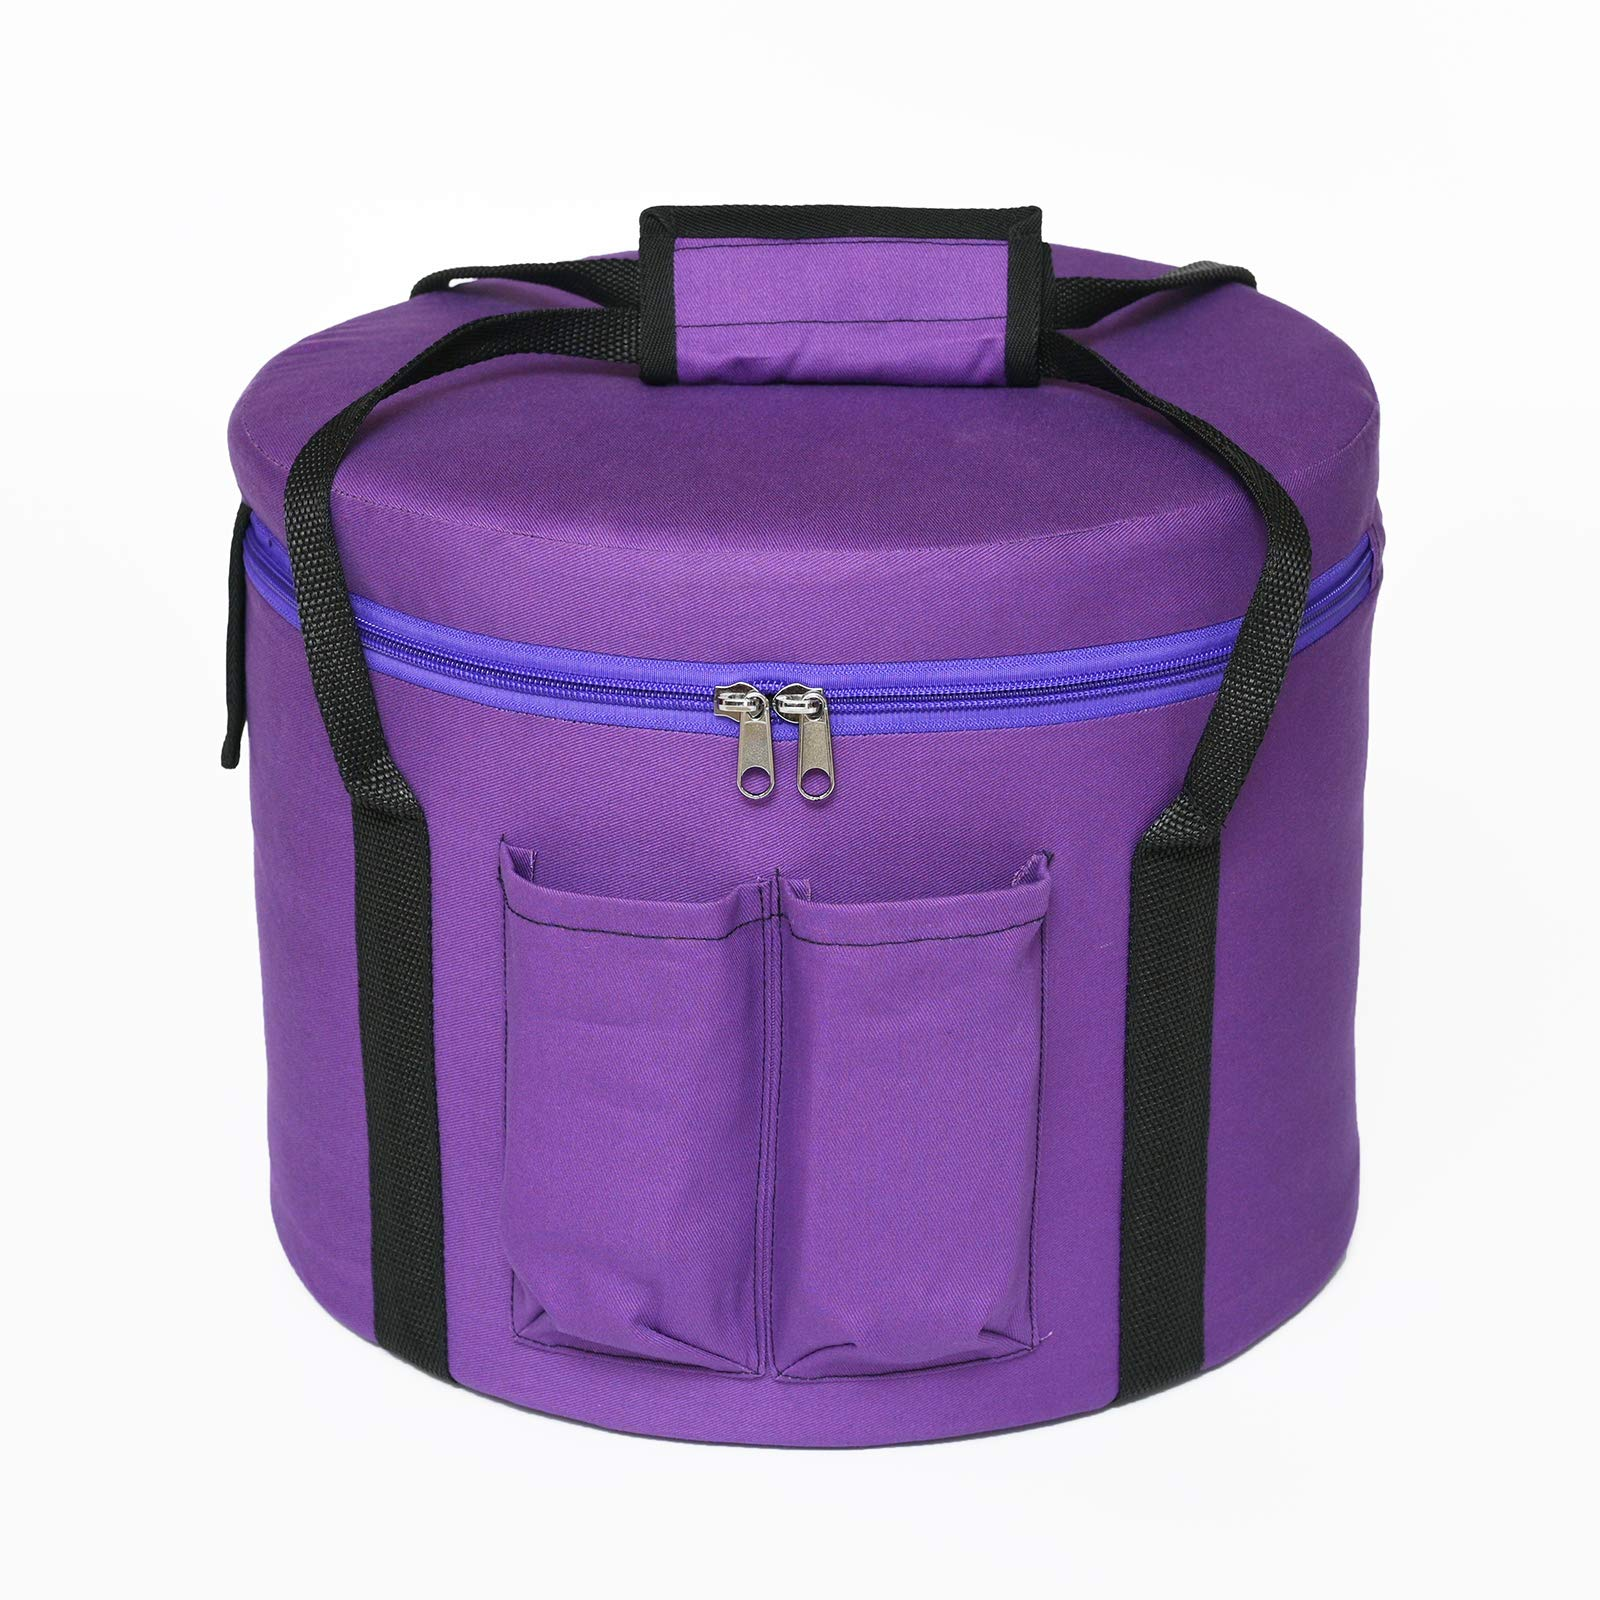 CVNC 10 Inch Purple Colored Bag Heavy Duty Sponge Padded Crystal Singing Bowl Traveling Carry Case for 10 Inch Sound Bowls by CVNC